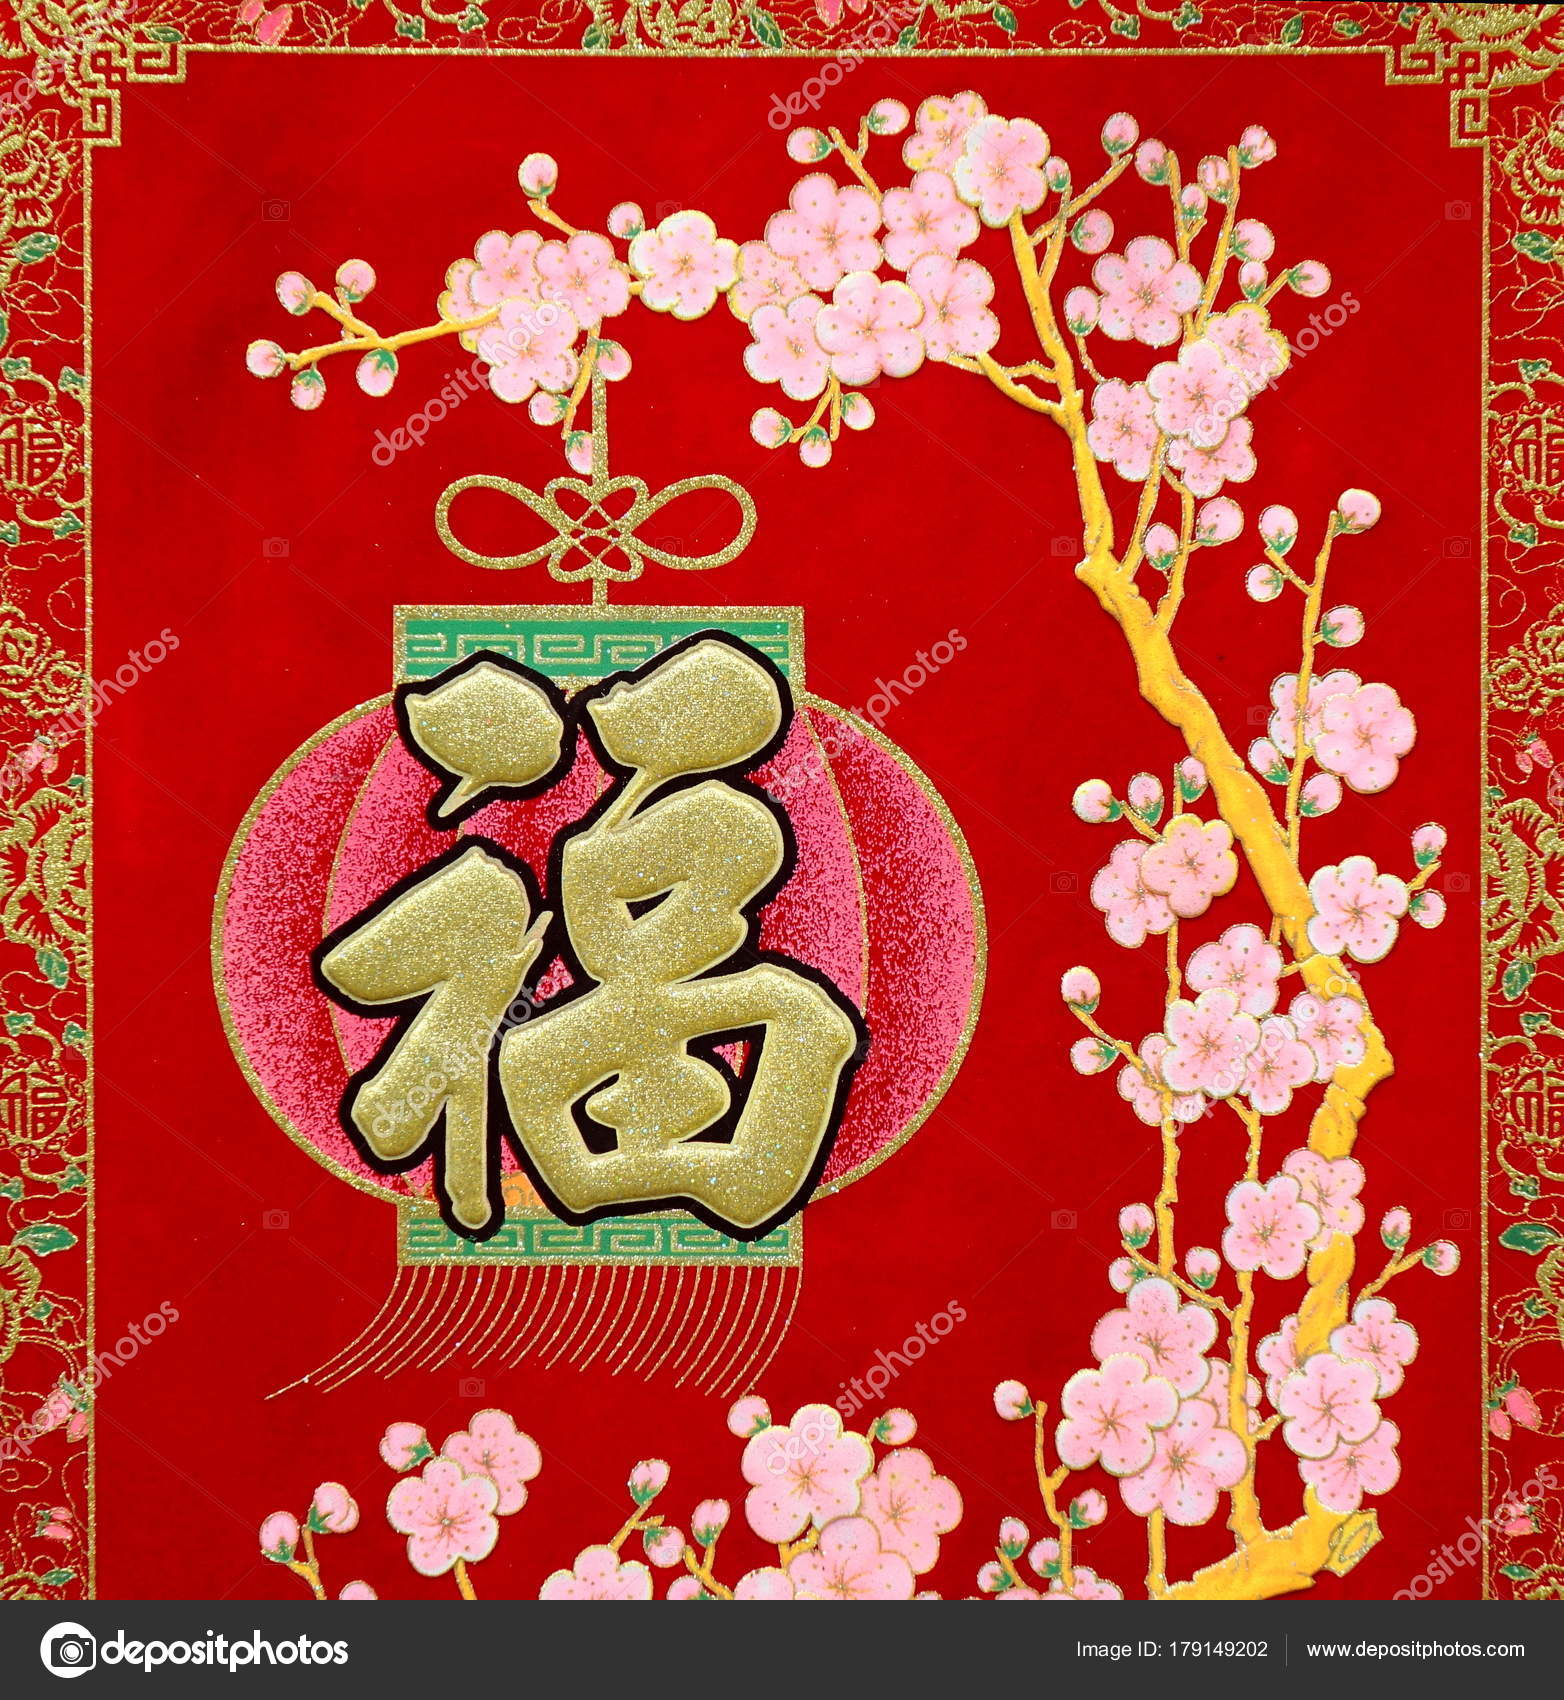 Chinese new year symbols and meanings gallery symbol and sign ideas chinese new year decorations and lucky symbols stock editorial kaohsiung taiwan december 31 2017chinese new years buycottarizona Gallery